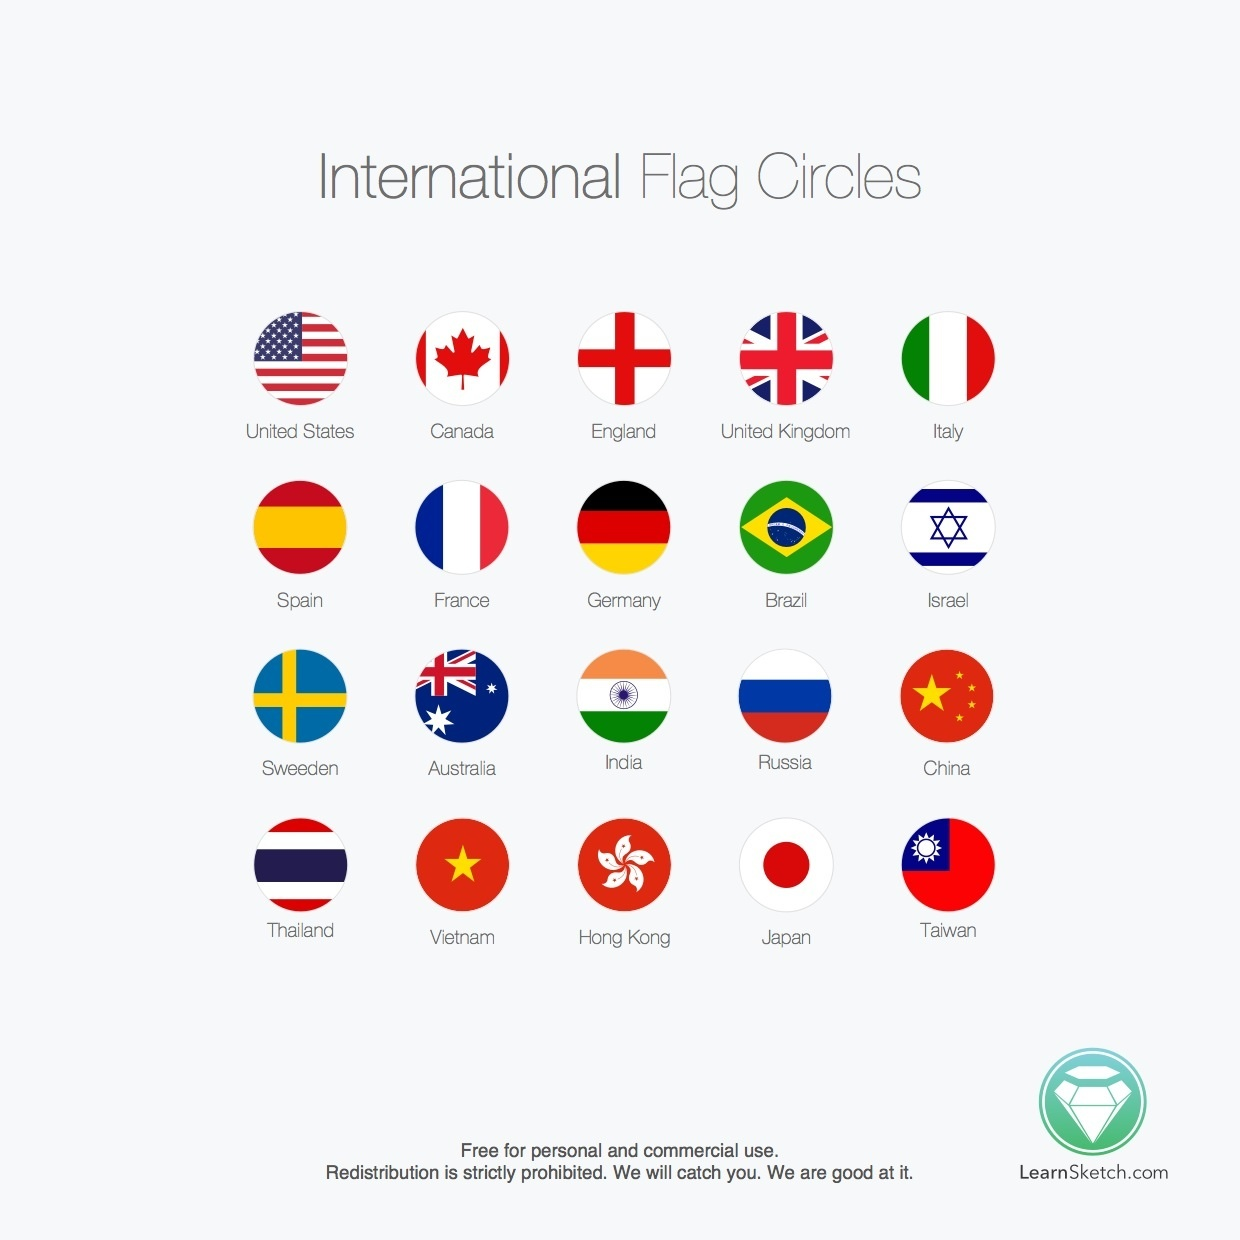 International Flag Circles